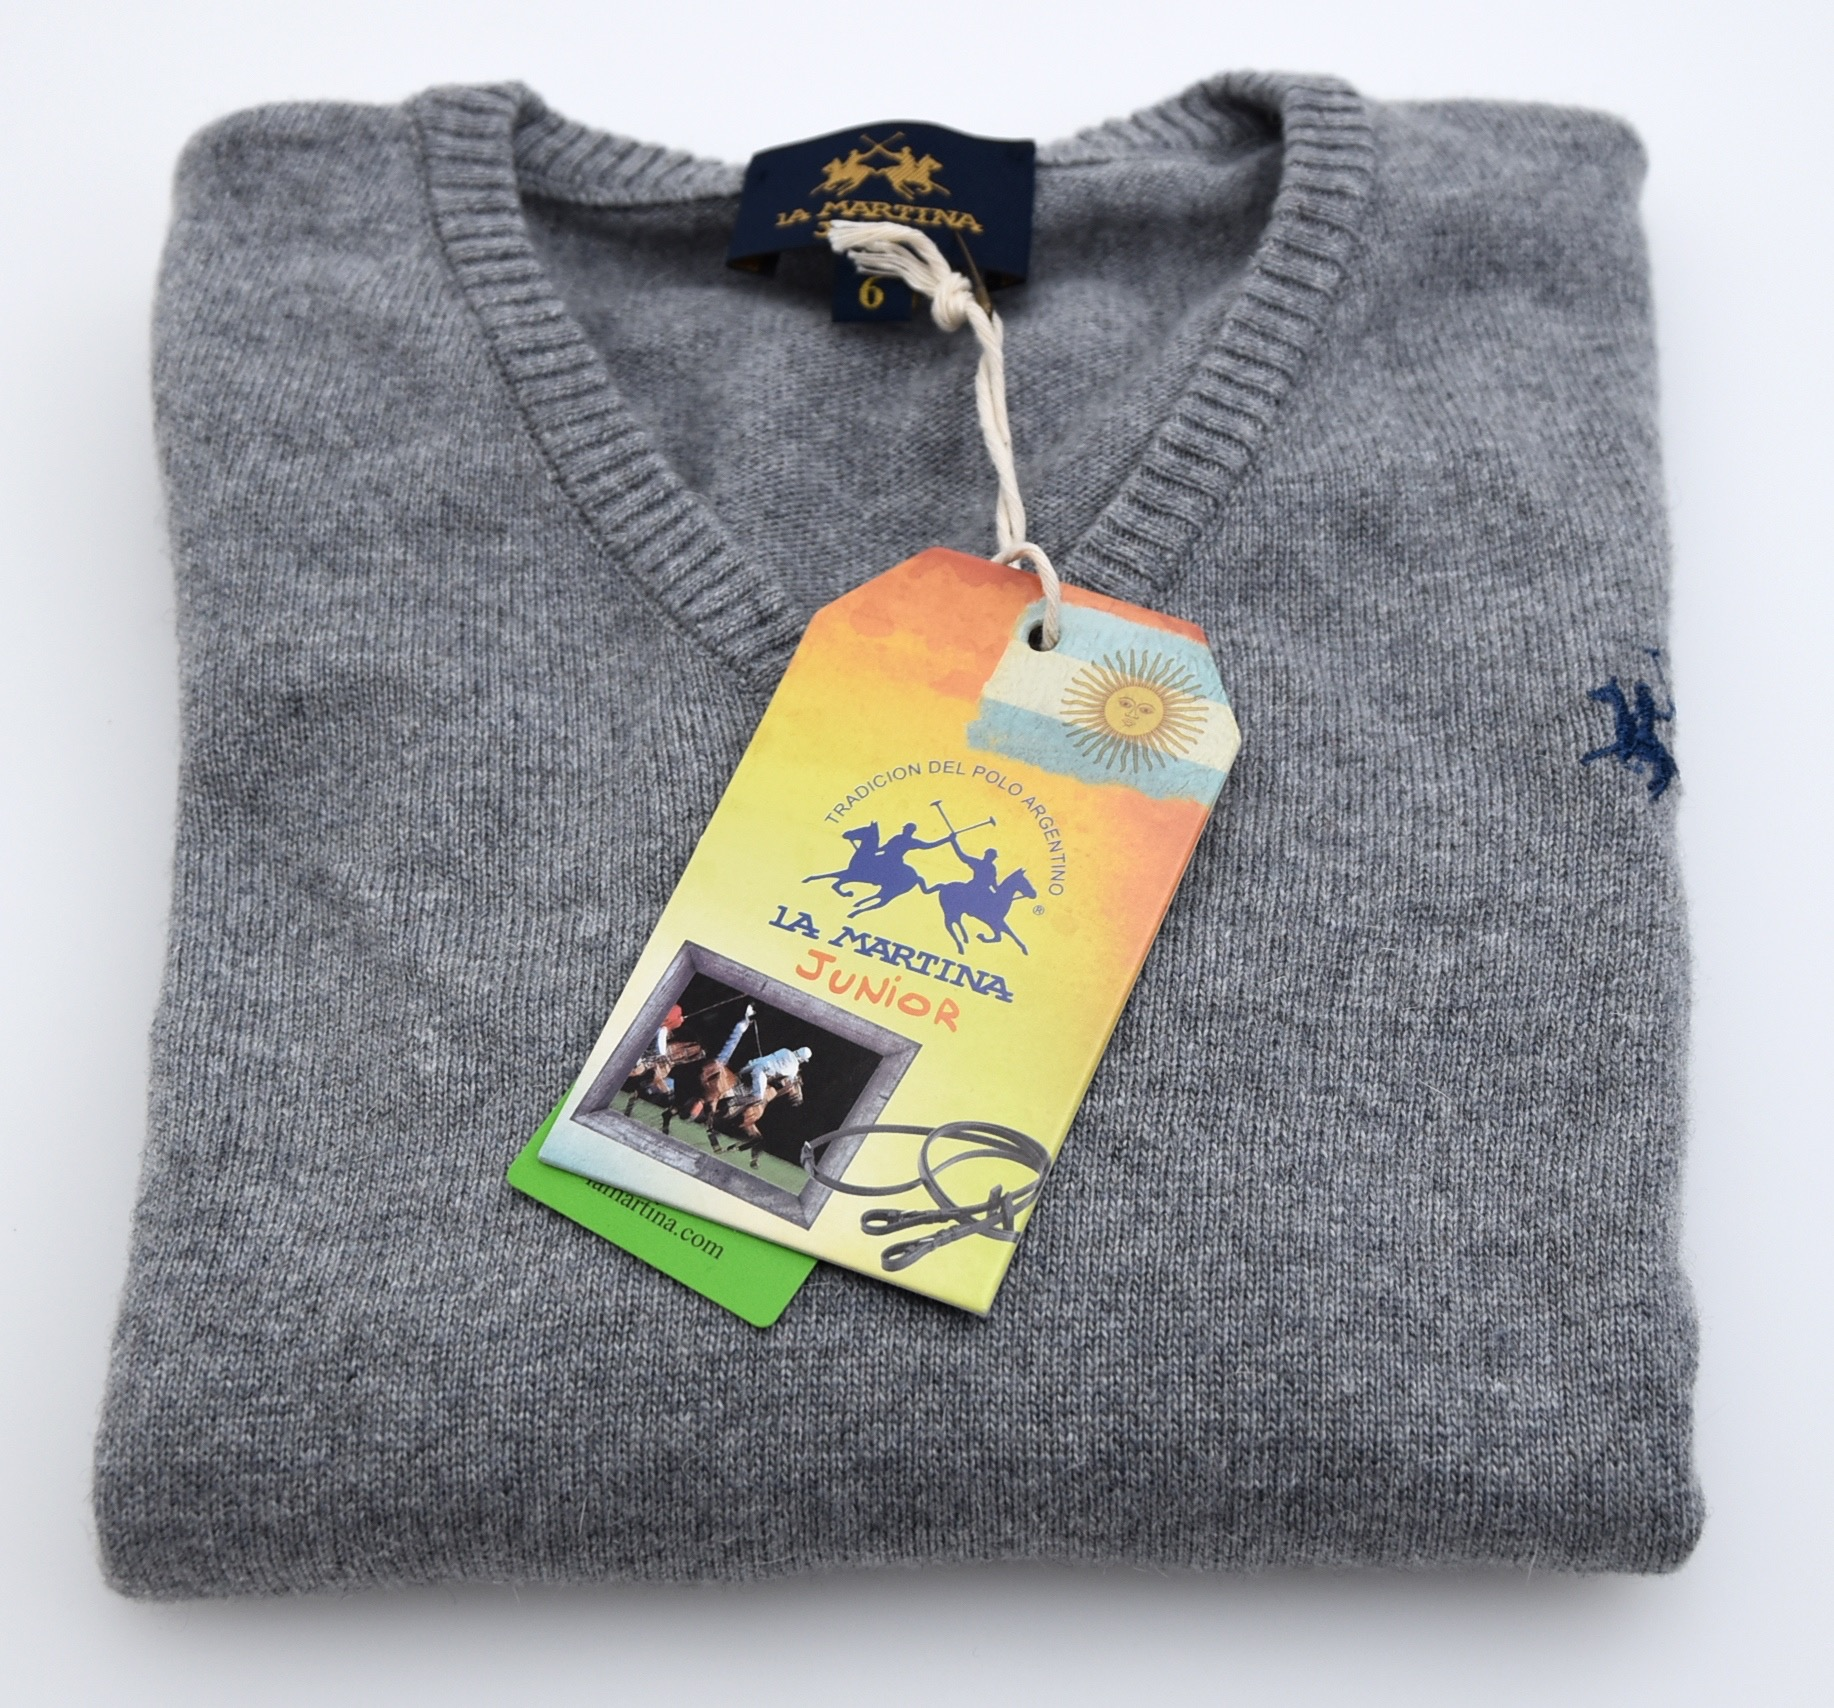 03b4887a5 Details about LA MARTINA JUNIOR BOY PULLOVER JUMPER SWEATER V-NECK WINTER  CODE 62 A 4704